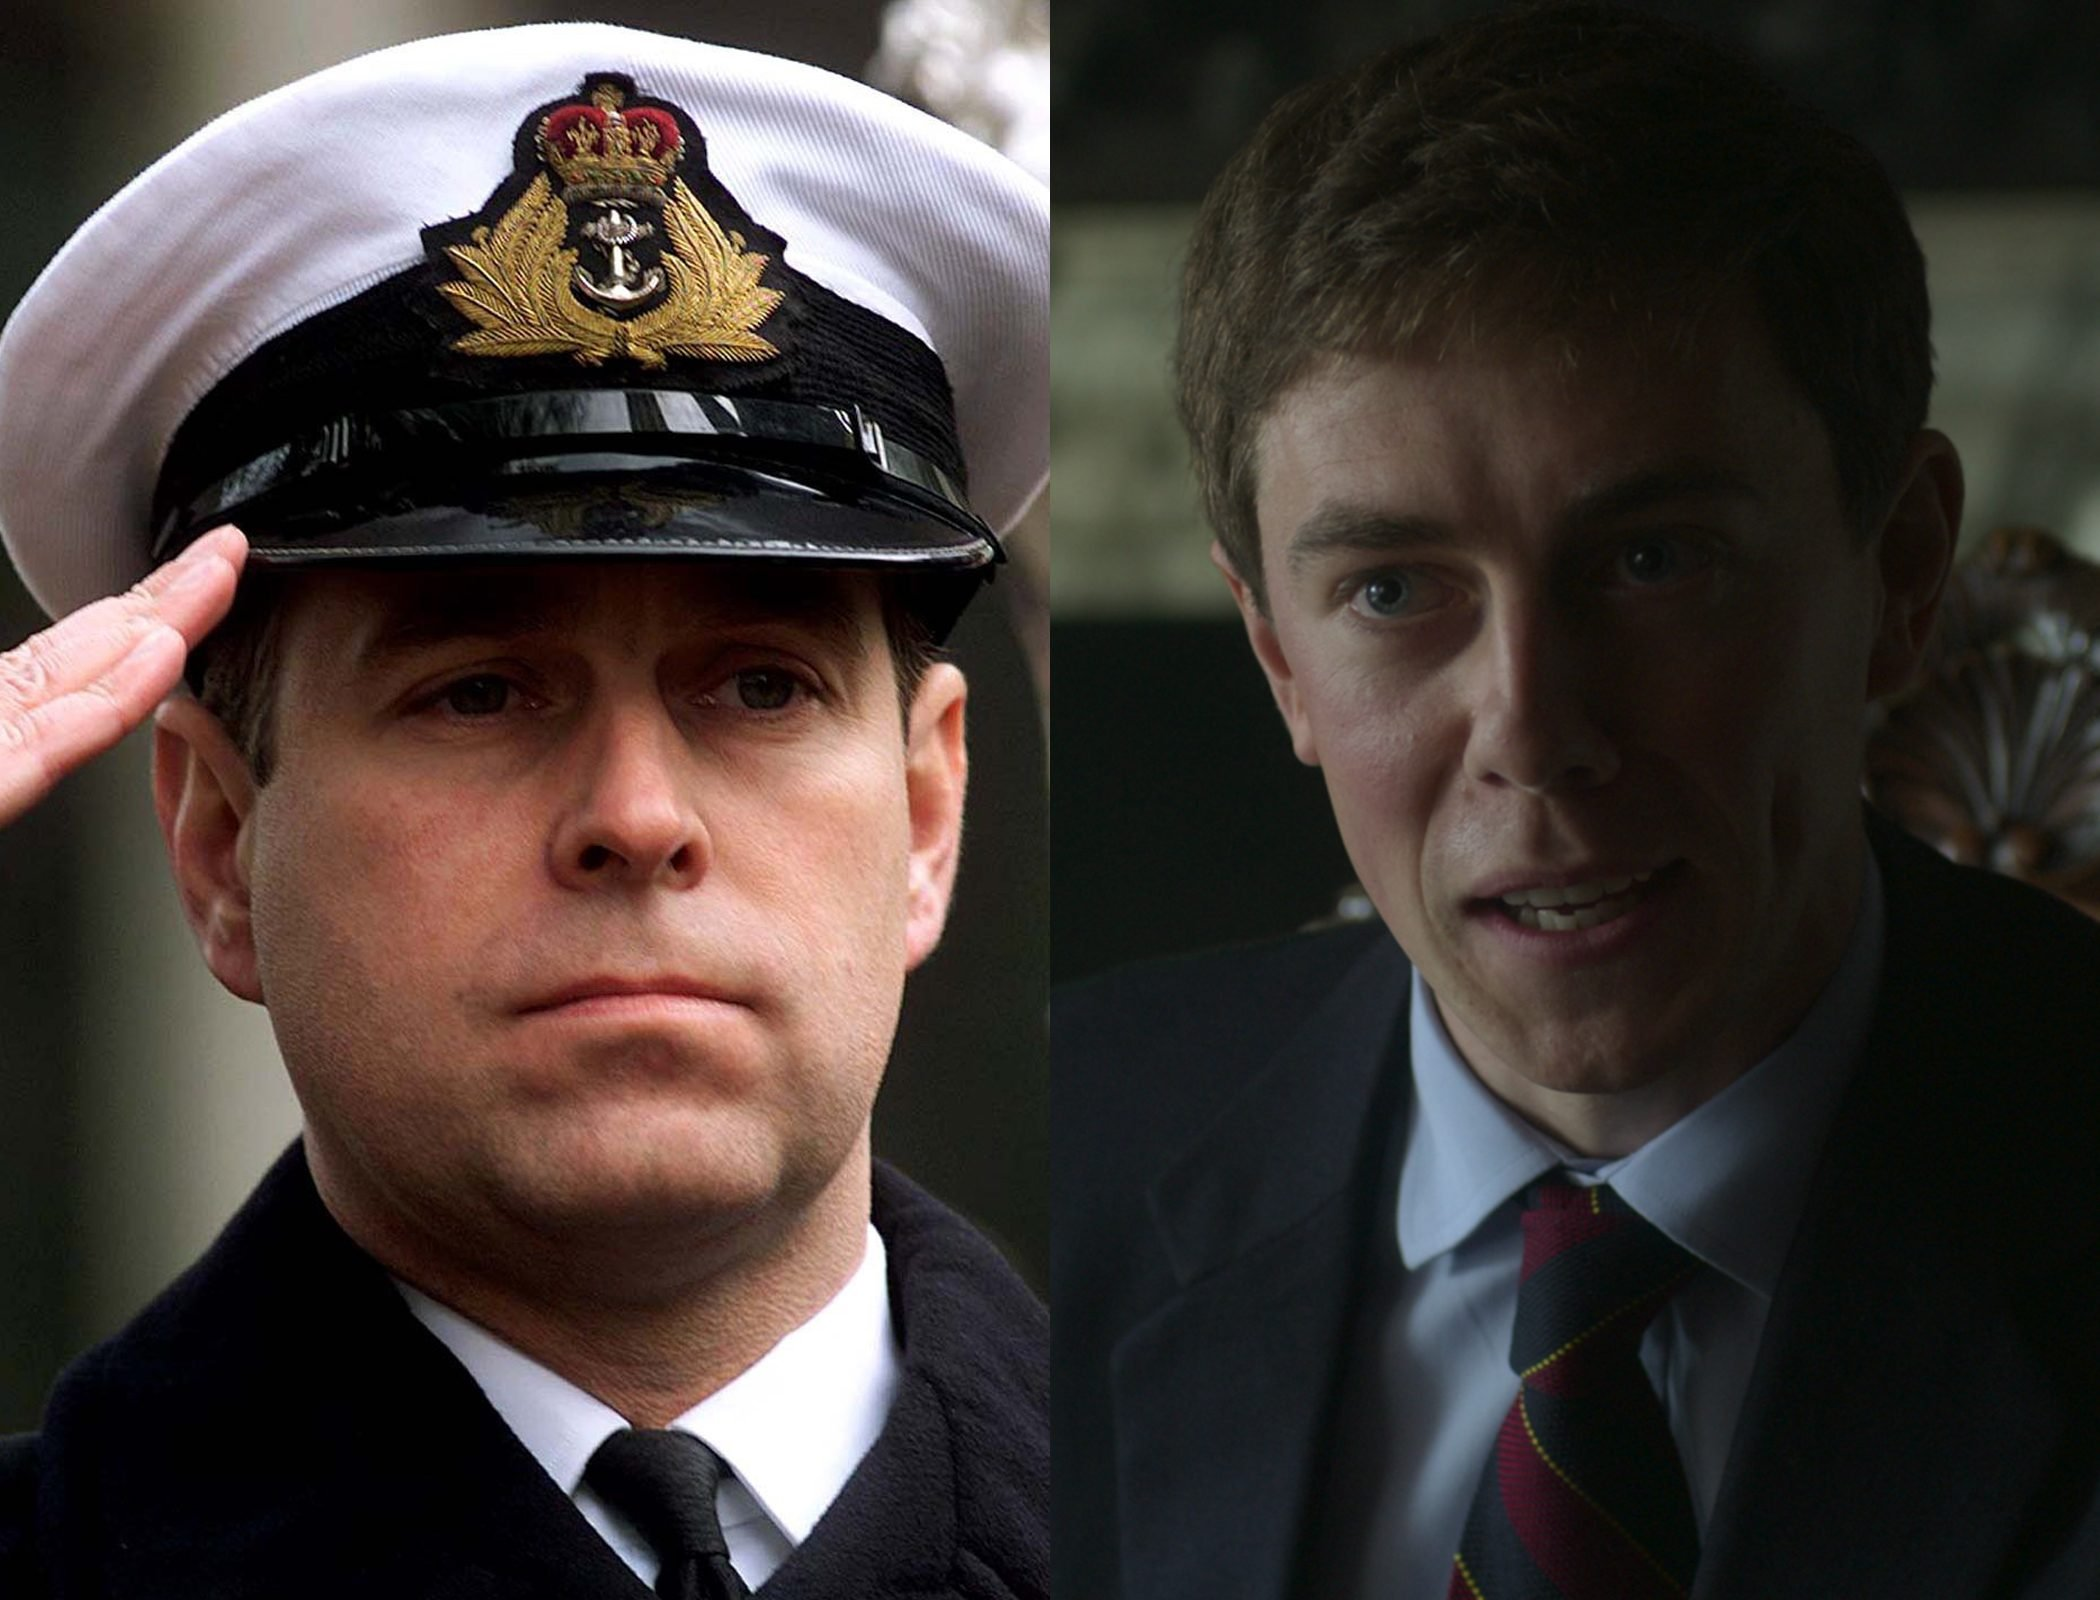 Prince Andrew, Duke of York, as played by Tom Byrne